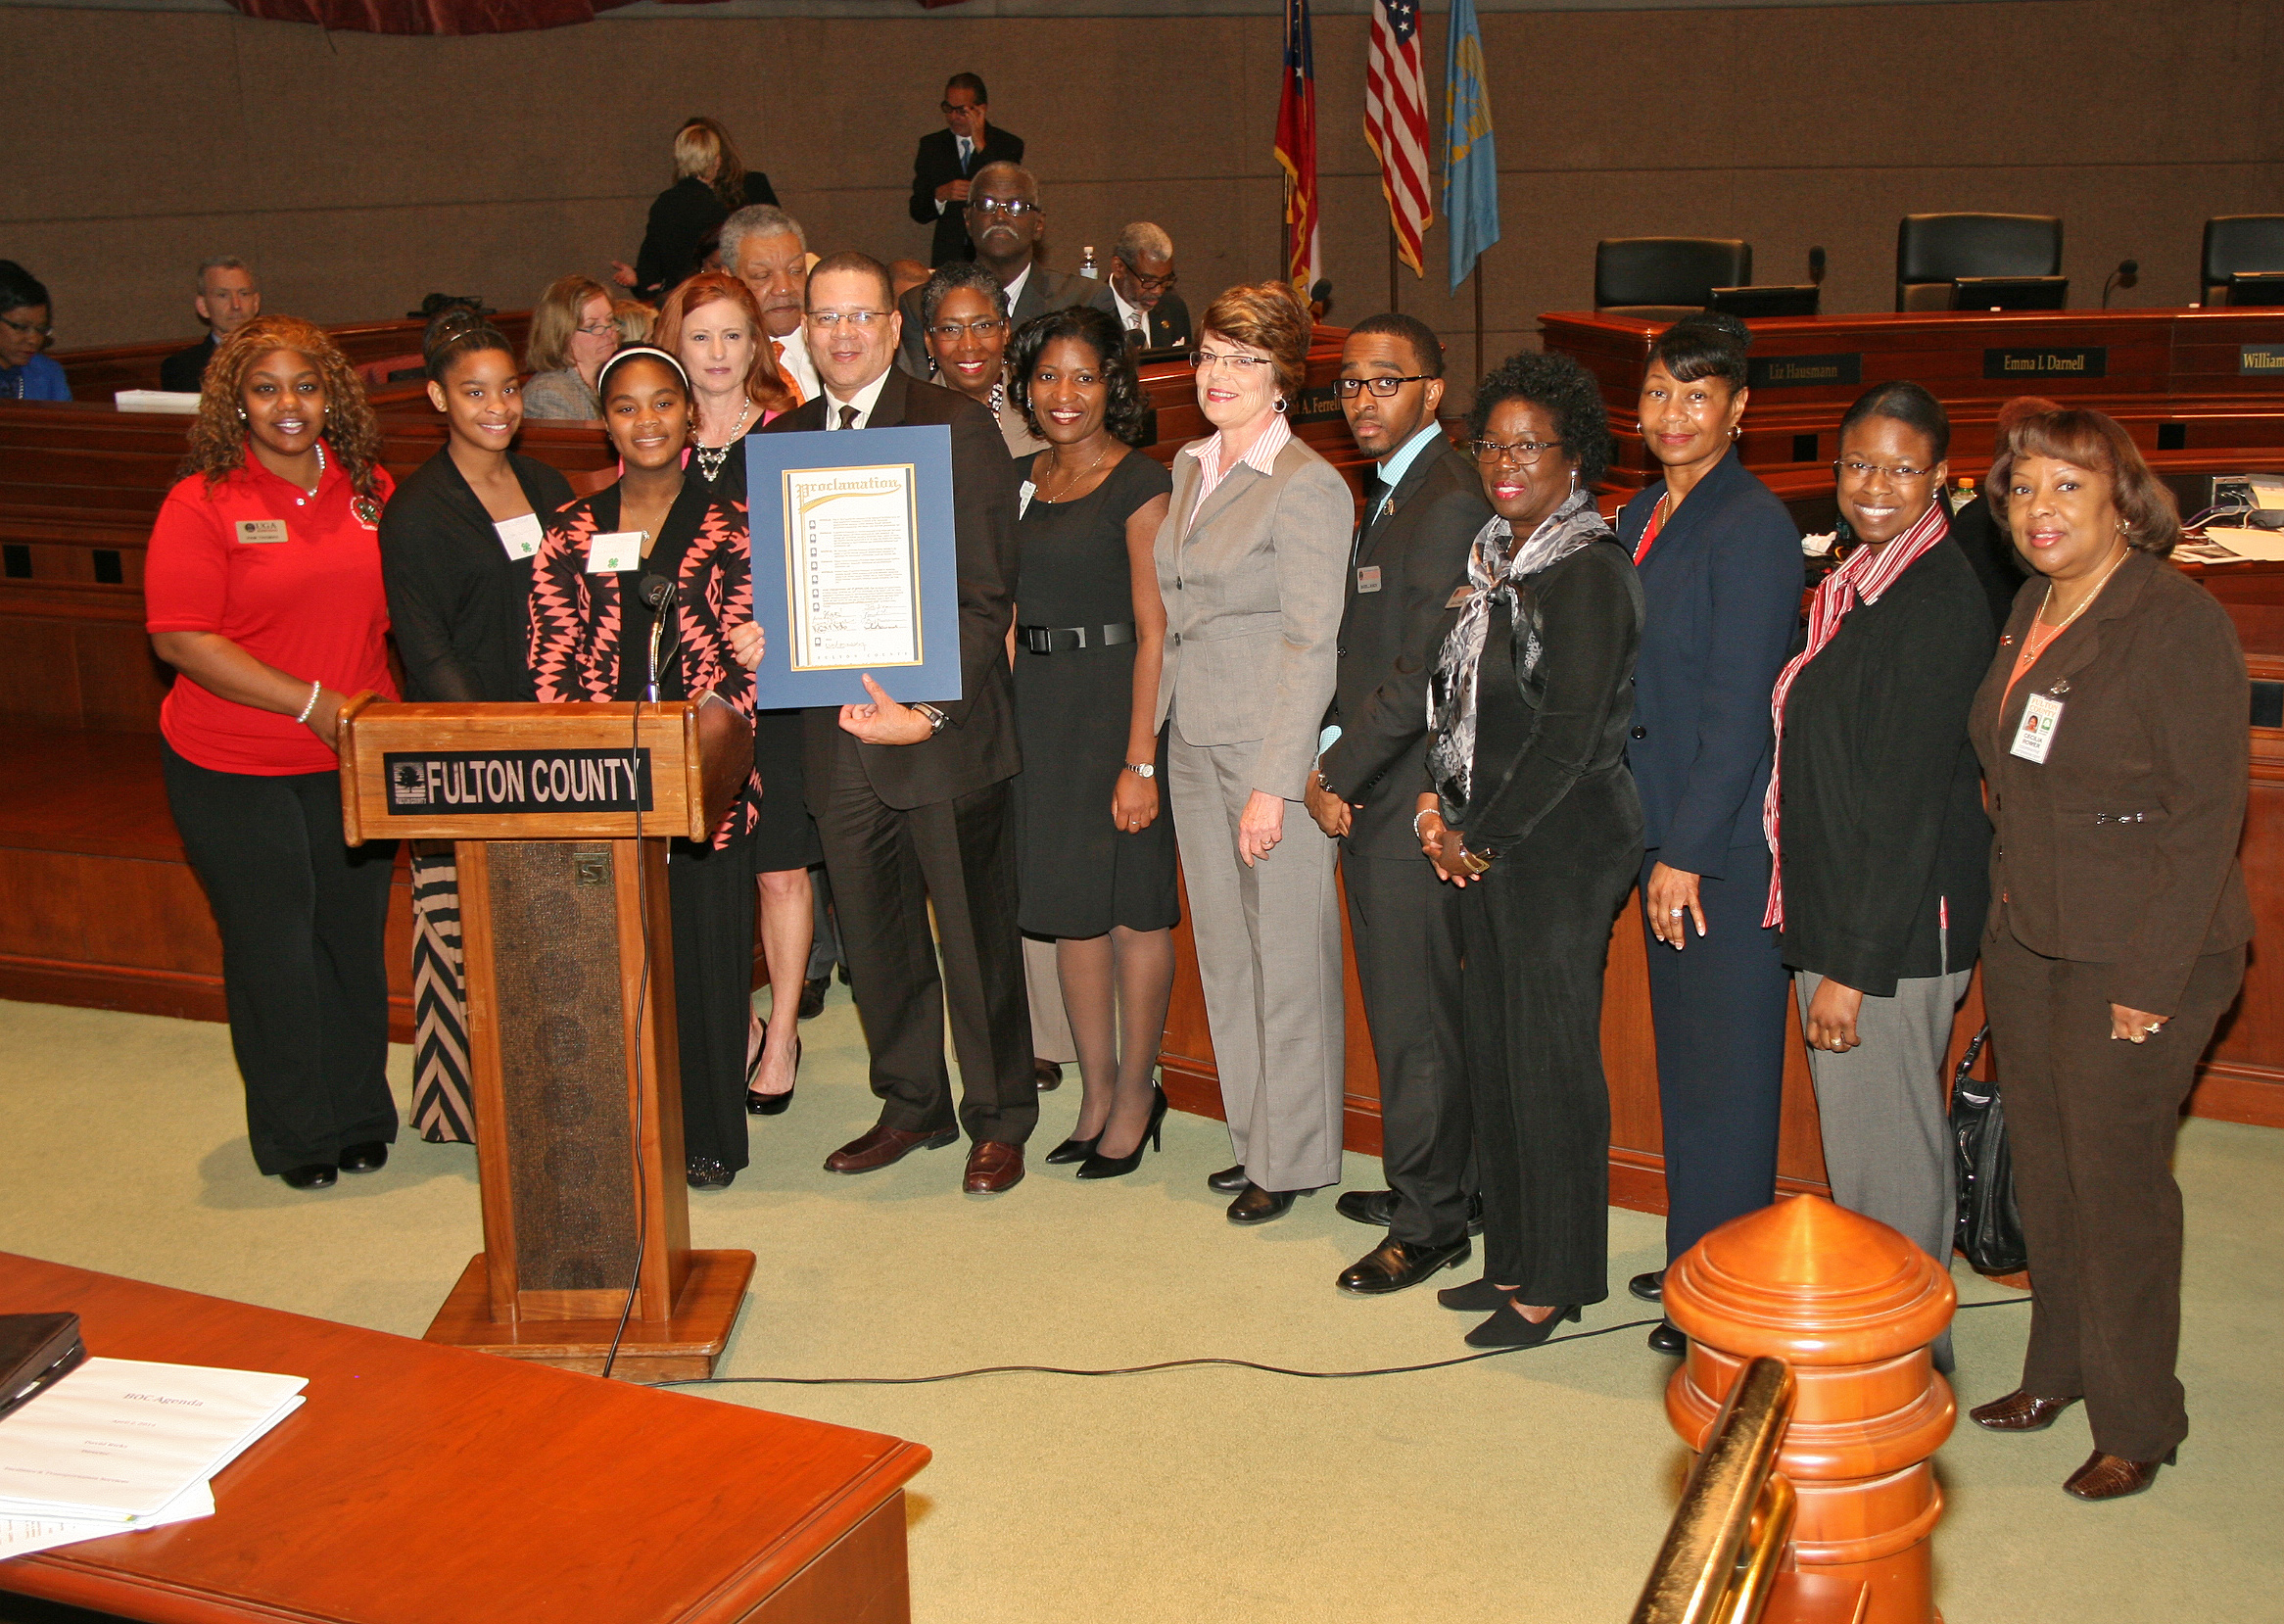 Fulton County Commission Chairman John Eaves presents a proclamation honoring UGA Extension's 100 years of service in Fulton County to County Extension Coordiantor Menia Chester, to his right; UGA Office of Environmental Sciences Director Susan Varlamoff, to her right, and the staff of the Fulton County UGA Extension Office.